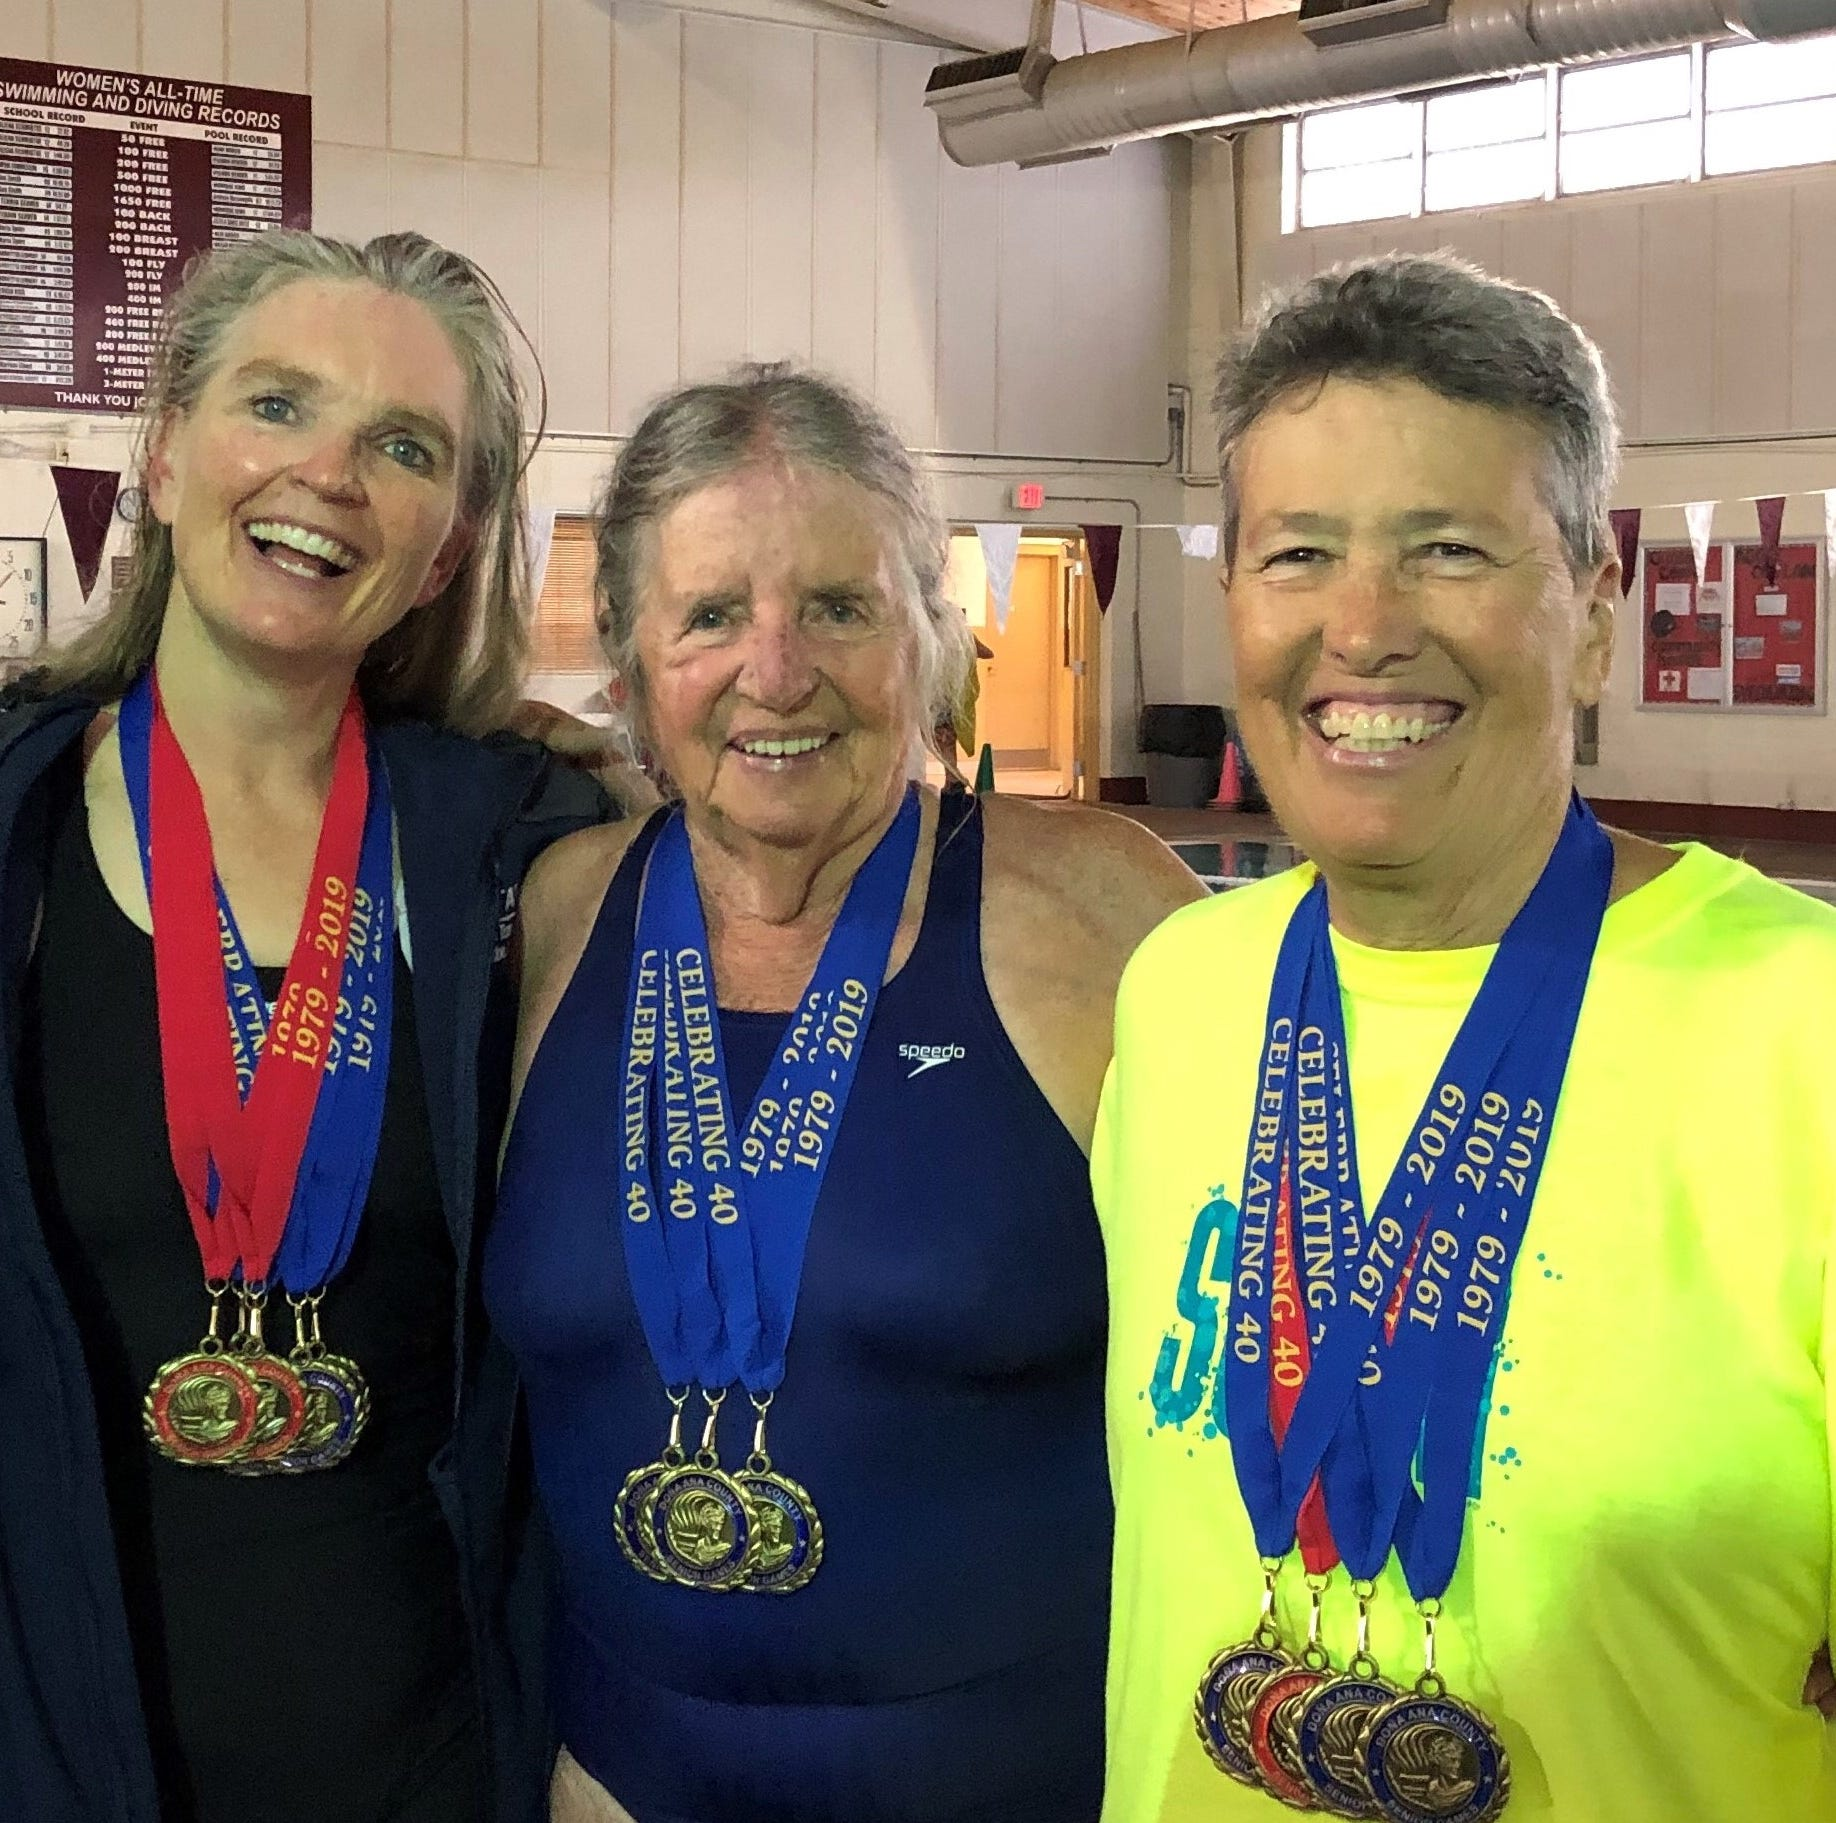 Senior swimmers add to medal count at Dona Ana Games in Las Cruces, NM